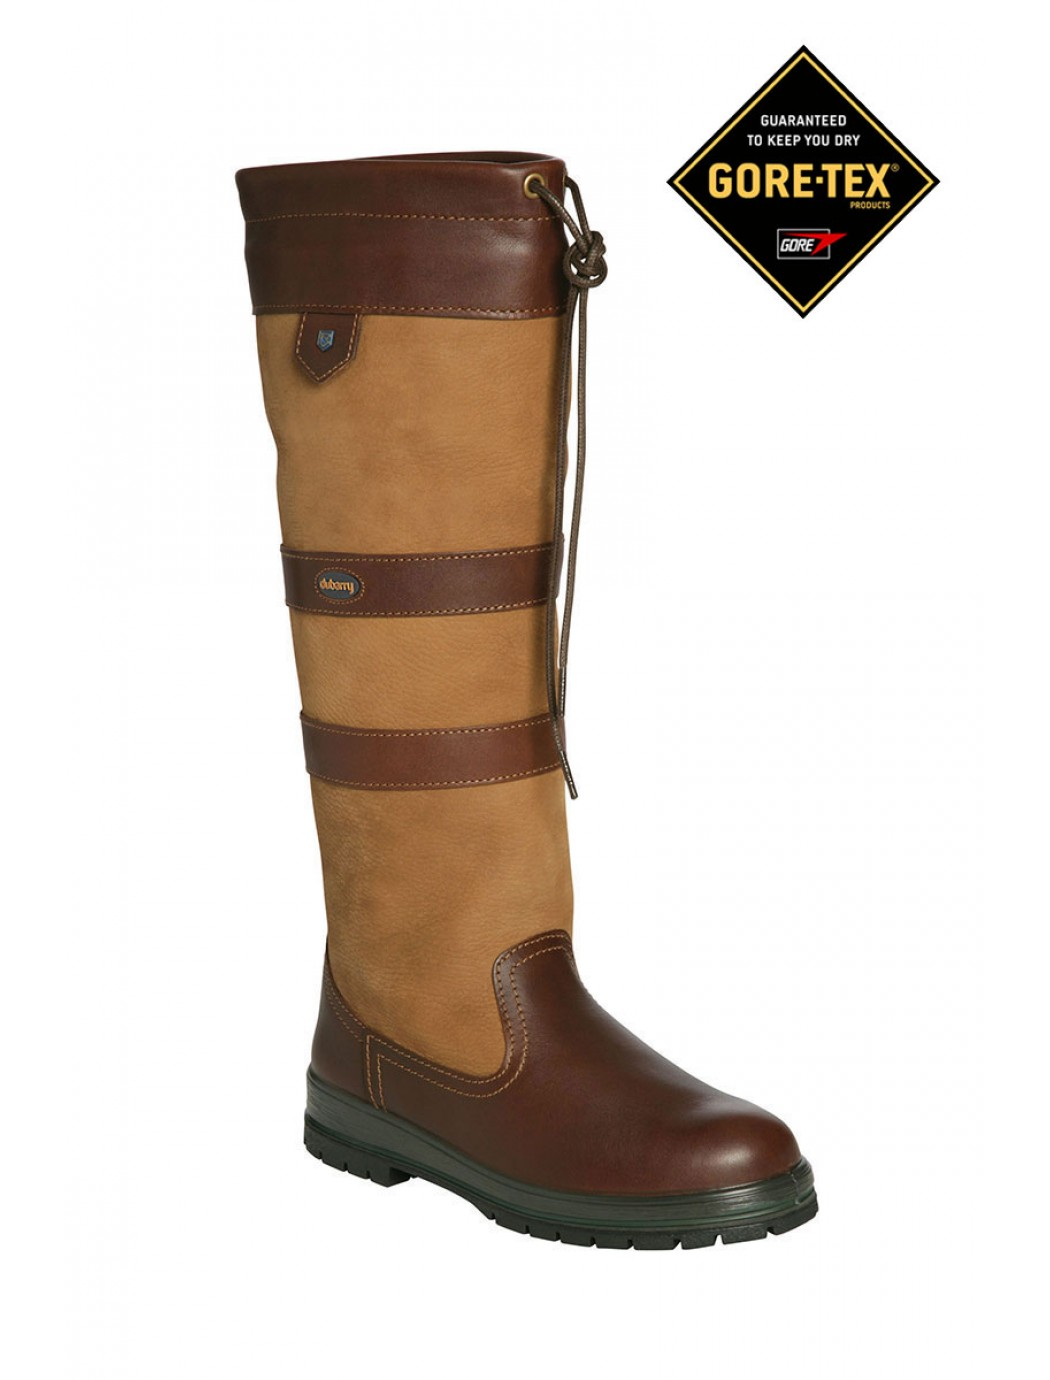 galway-country-boots-brown 1